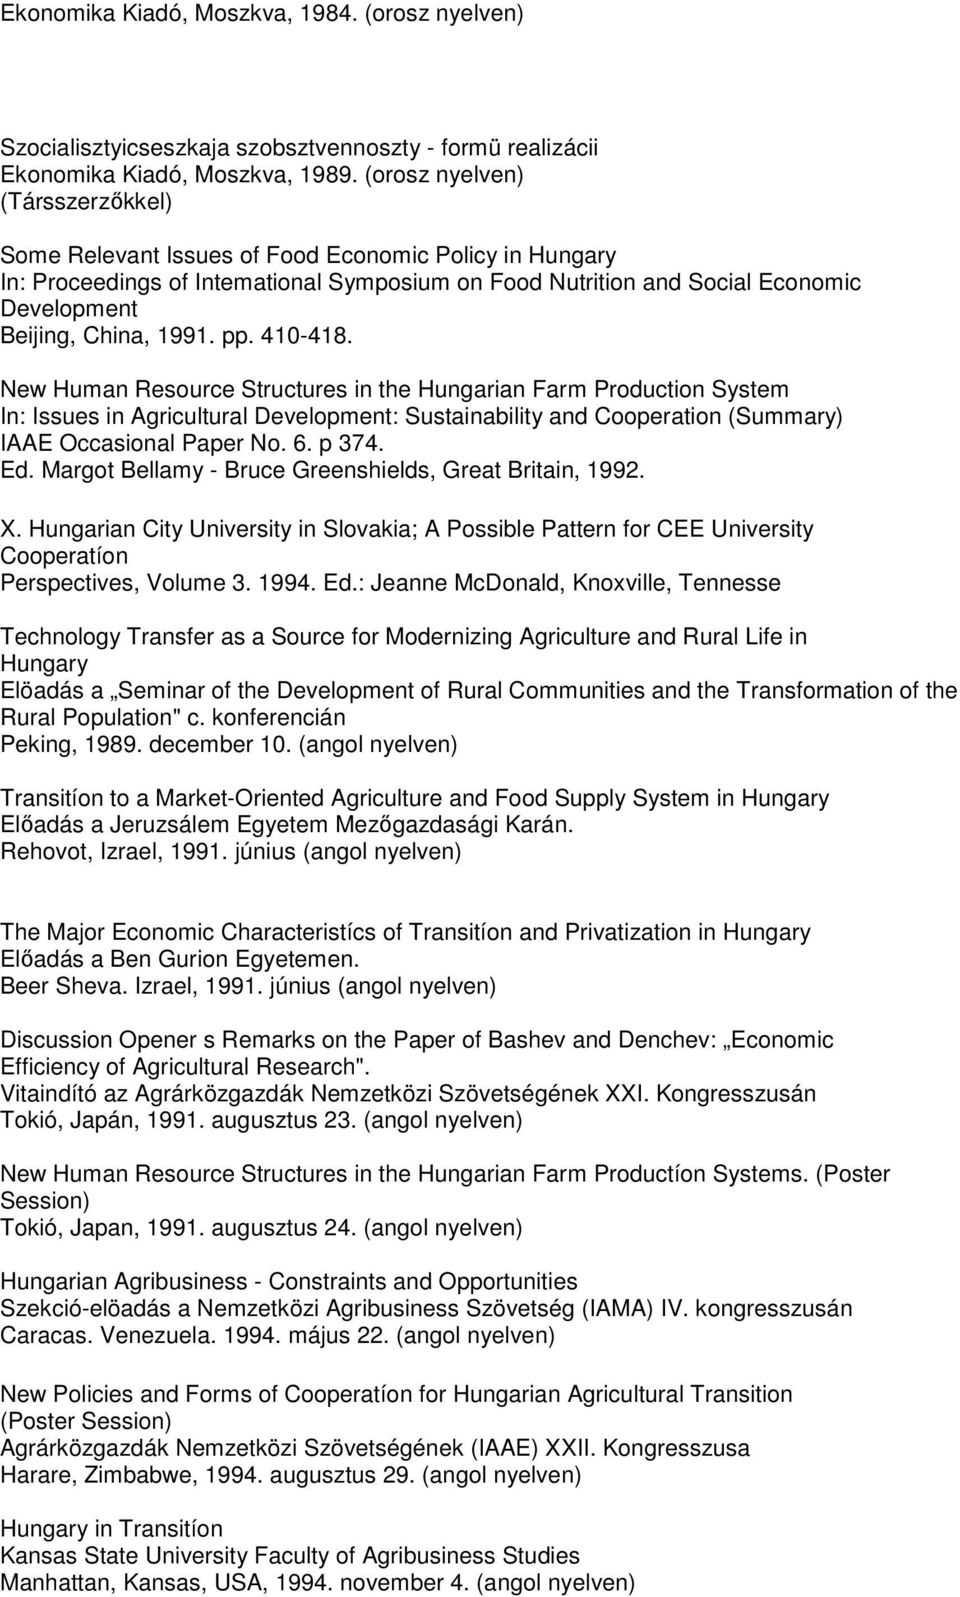 1991. pp. 410-418. New Human Resource Structures in the Hungarian Farm Production System In: Issues in Agricultural Development: Sustainability and Cooperation (Summary) IAAE Occasional Paper No. 6.